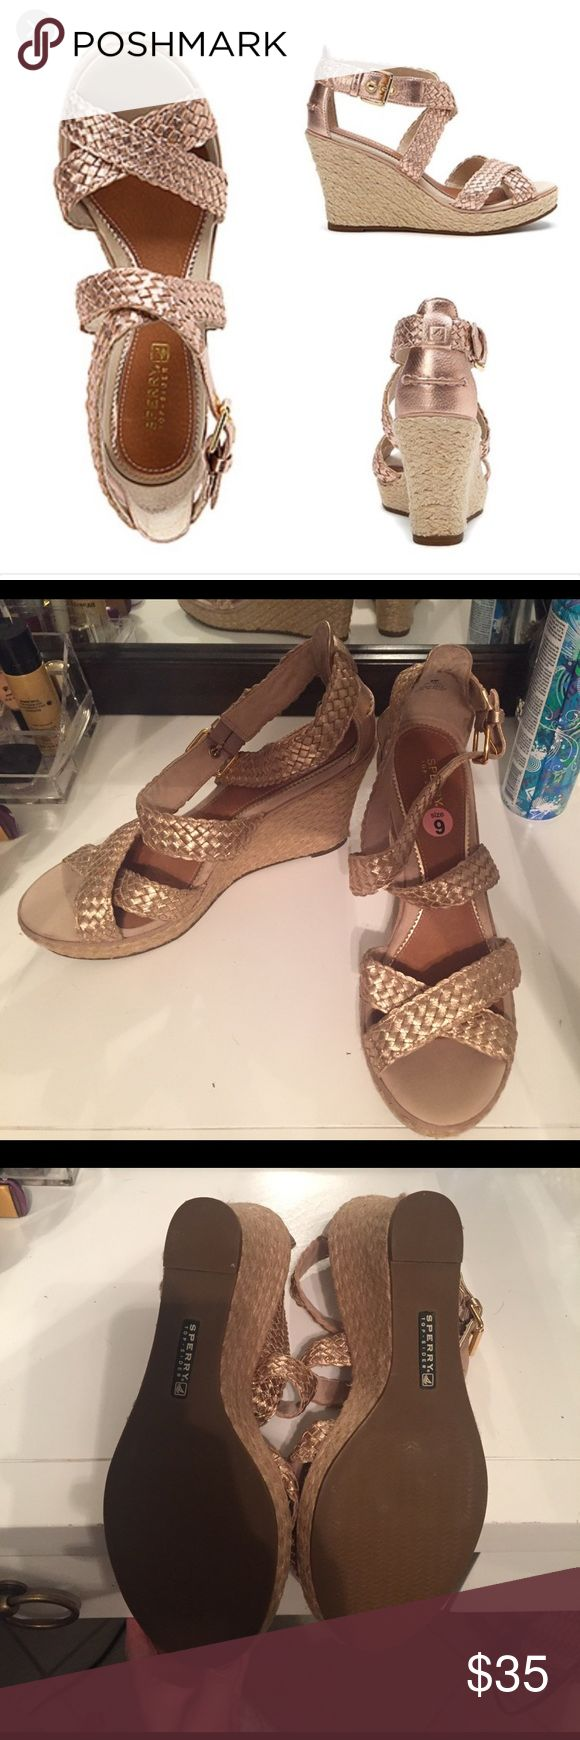 Sperry Rose Gold Wedge - size 9 Sperry Top Sider Rose Gold Wedge. Like New. Worn once. Size 9 Sperry Top-Sider Shoes Wedges